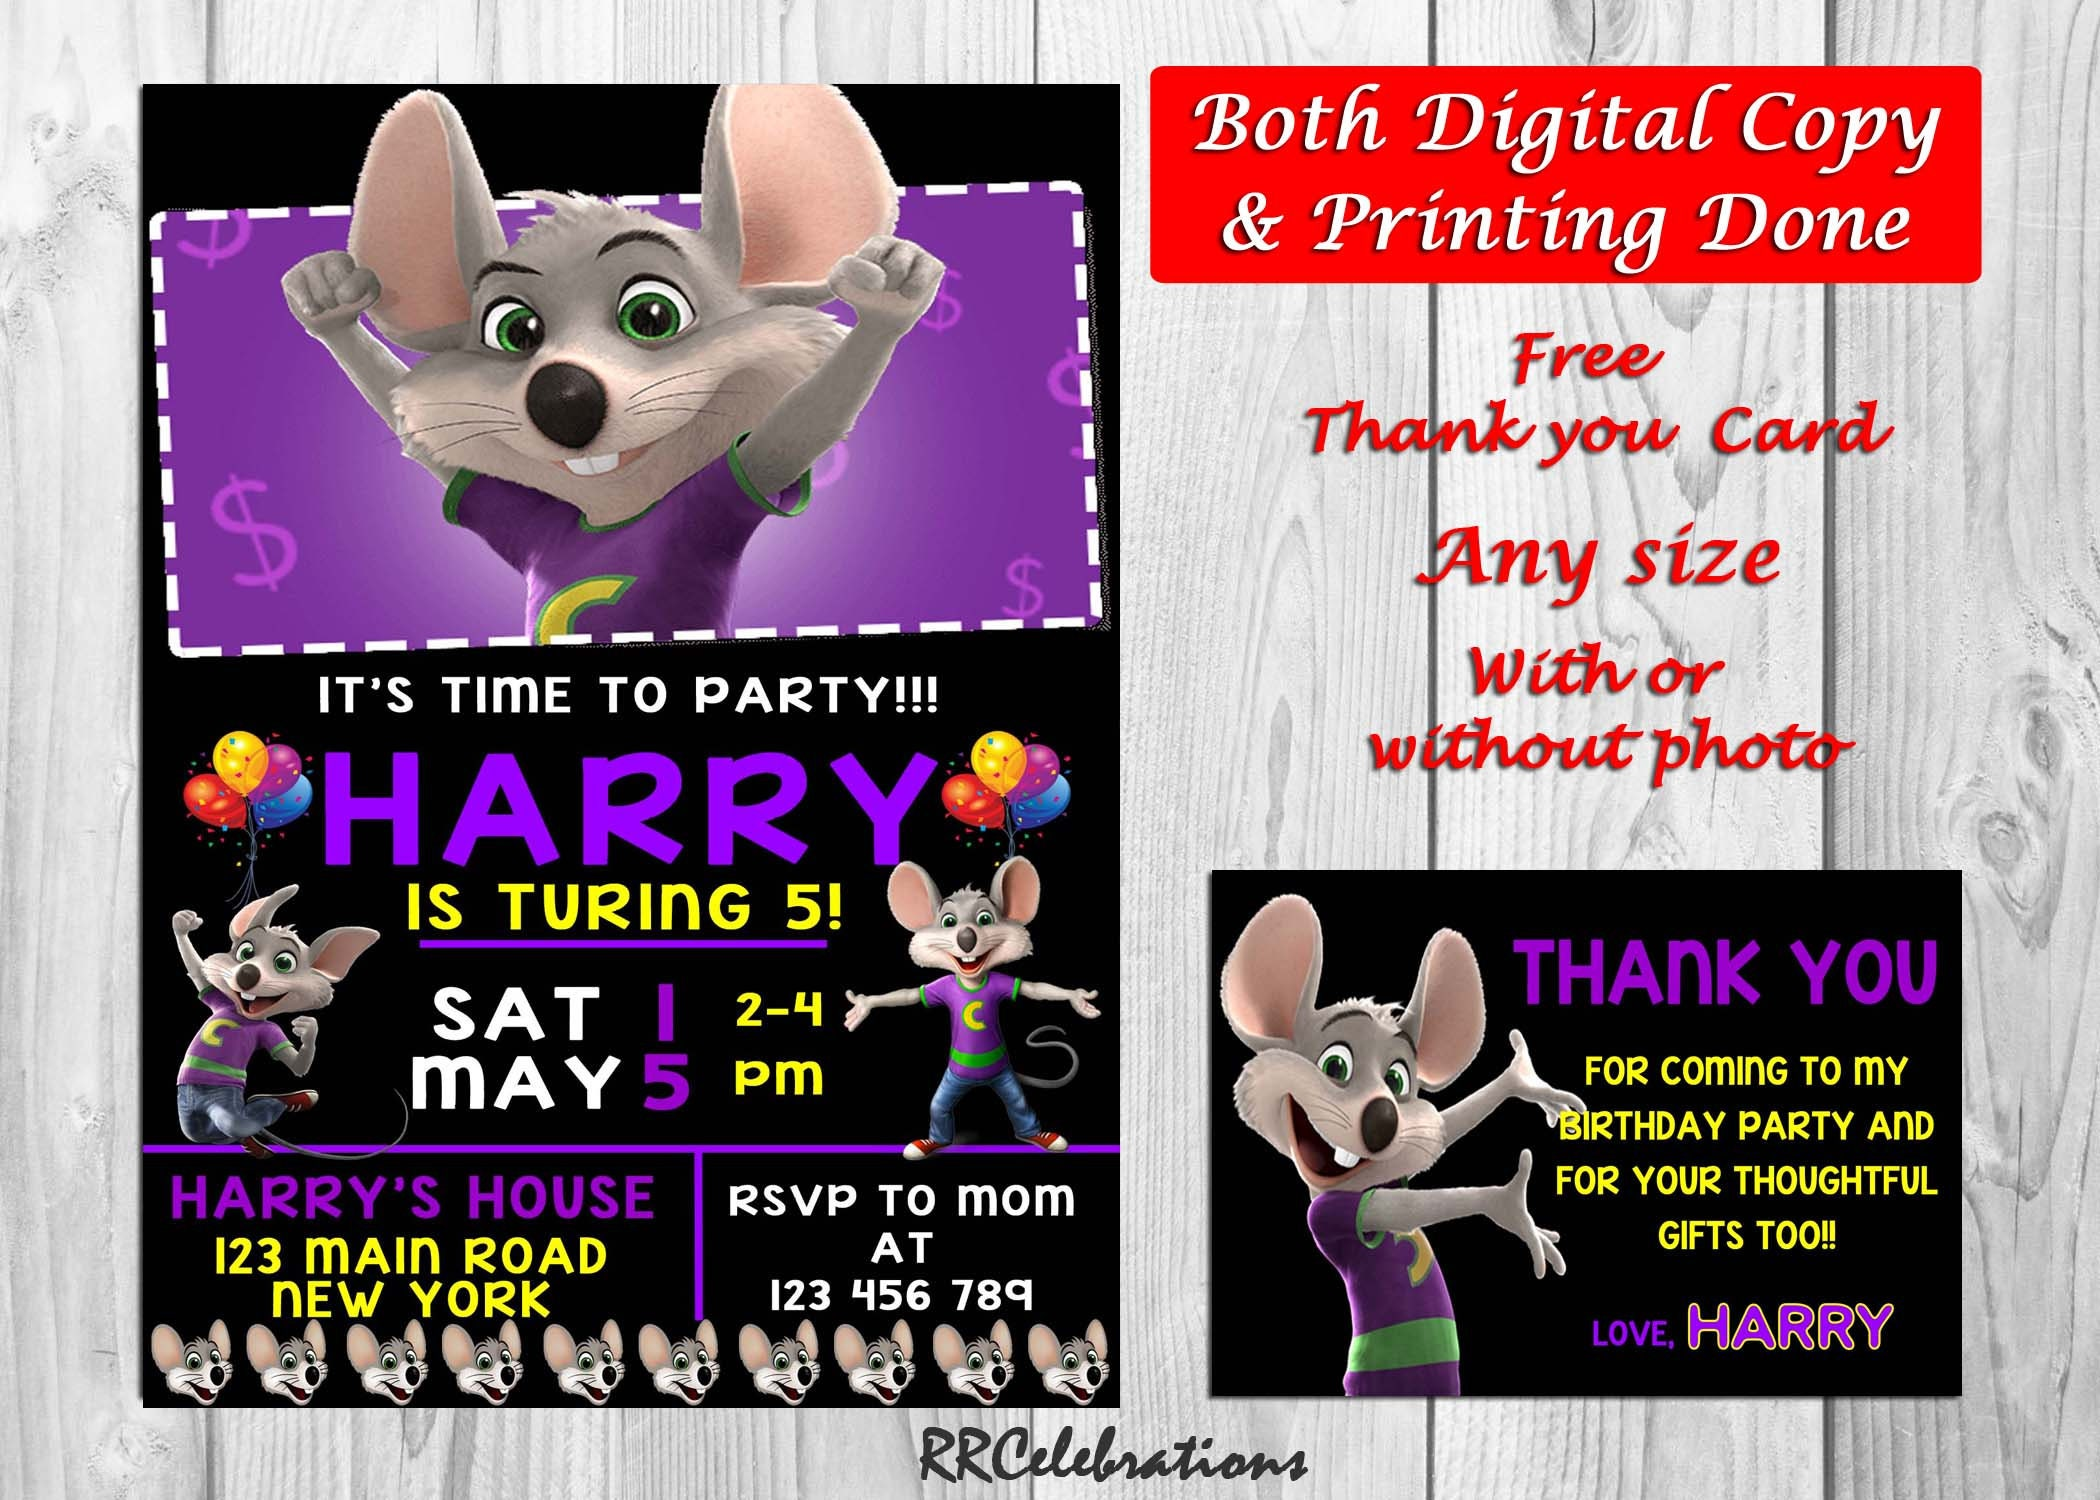 Chuck E Cheese Birthday Photo Invitations Chuck E Cheese Invites Chuck E Cheese Printed Invite Free Thank You Card Final Copy Within 24hrs